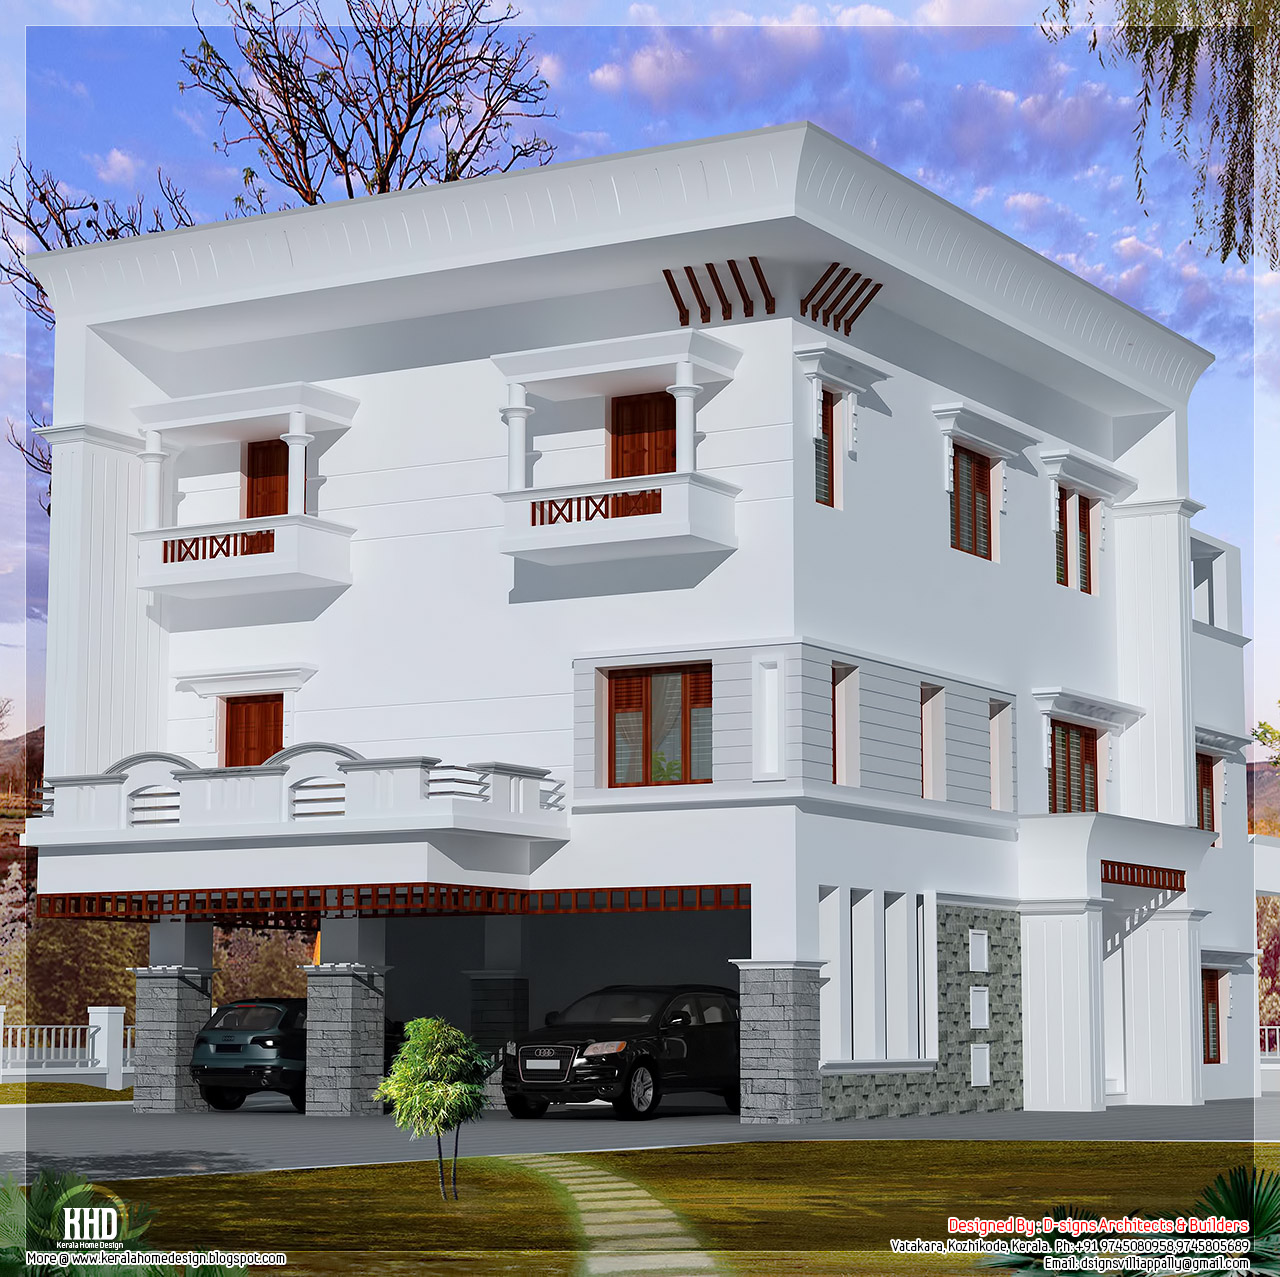 3 storey flat roof home design kerala home design and for Flat roof home plans